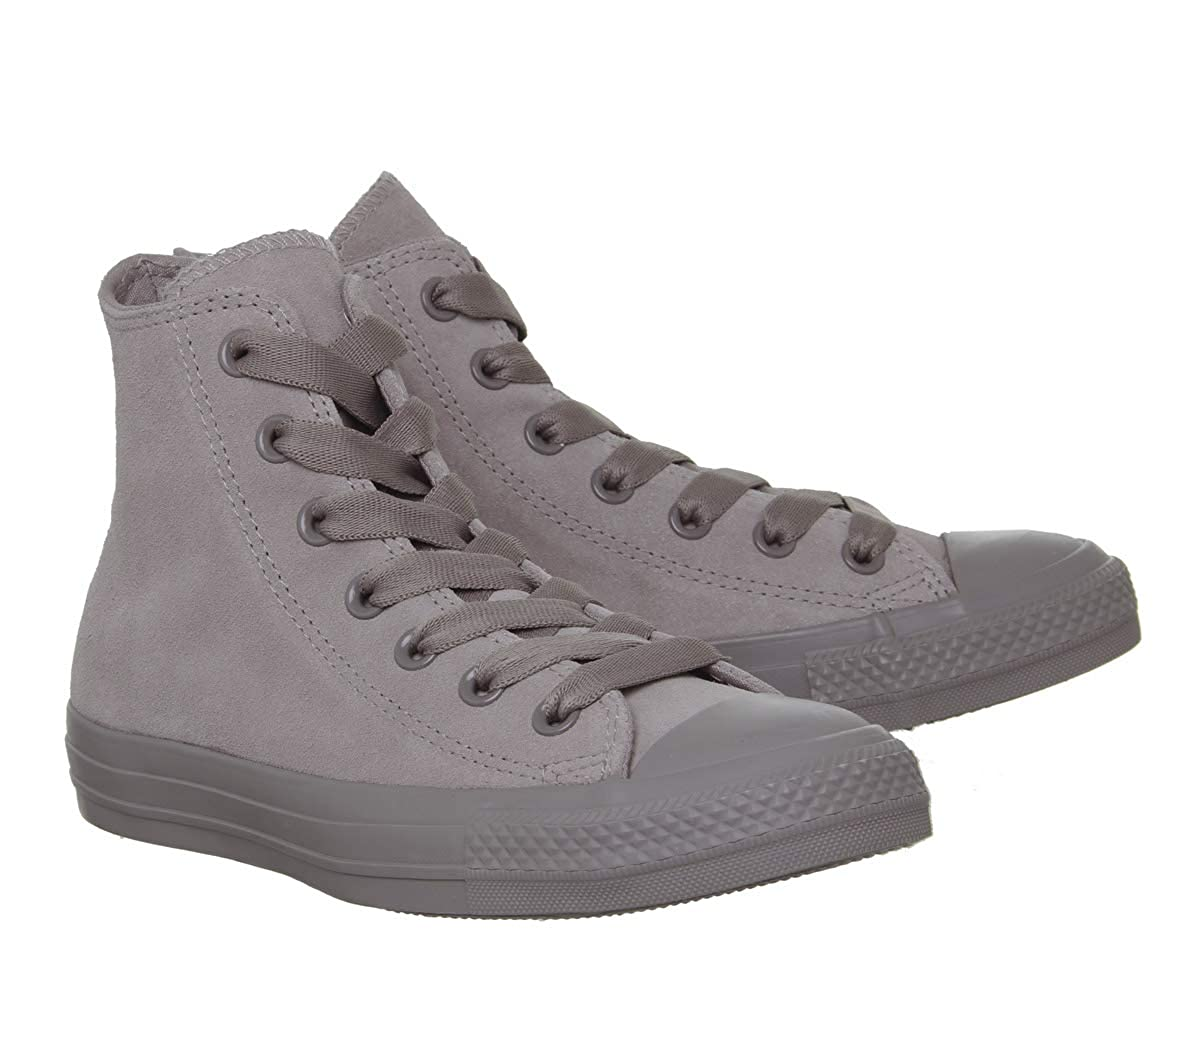 0839ca35208 Converse Unisex Adults  Chuck Taylor All Star Hi-Top Trainers   Amazon.co.uk  Shoes   Bags